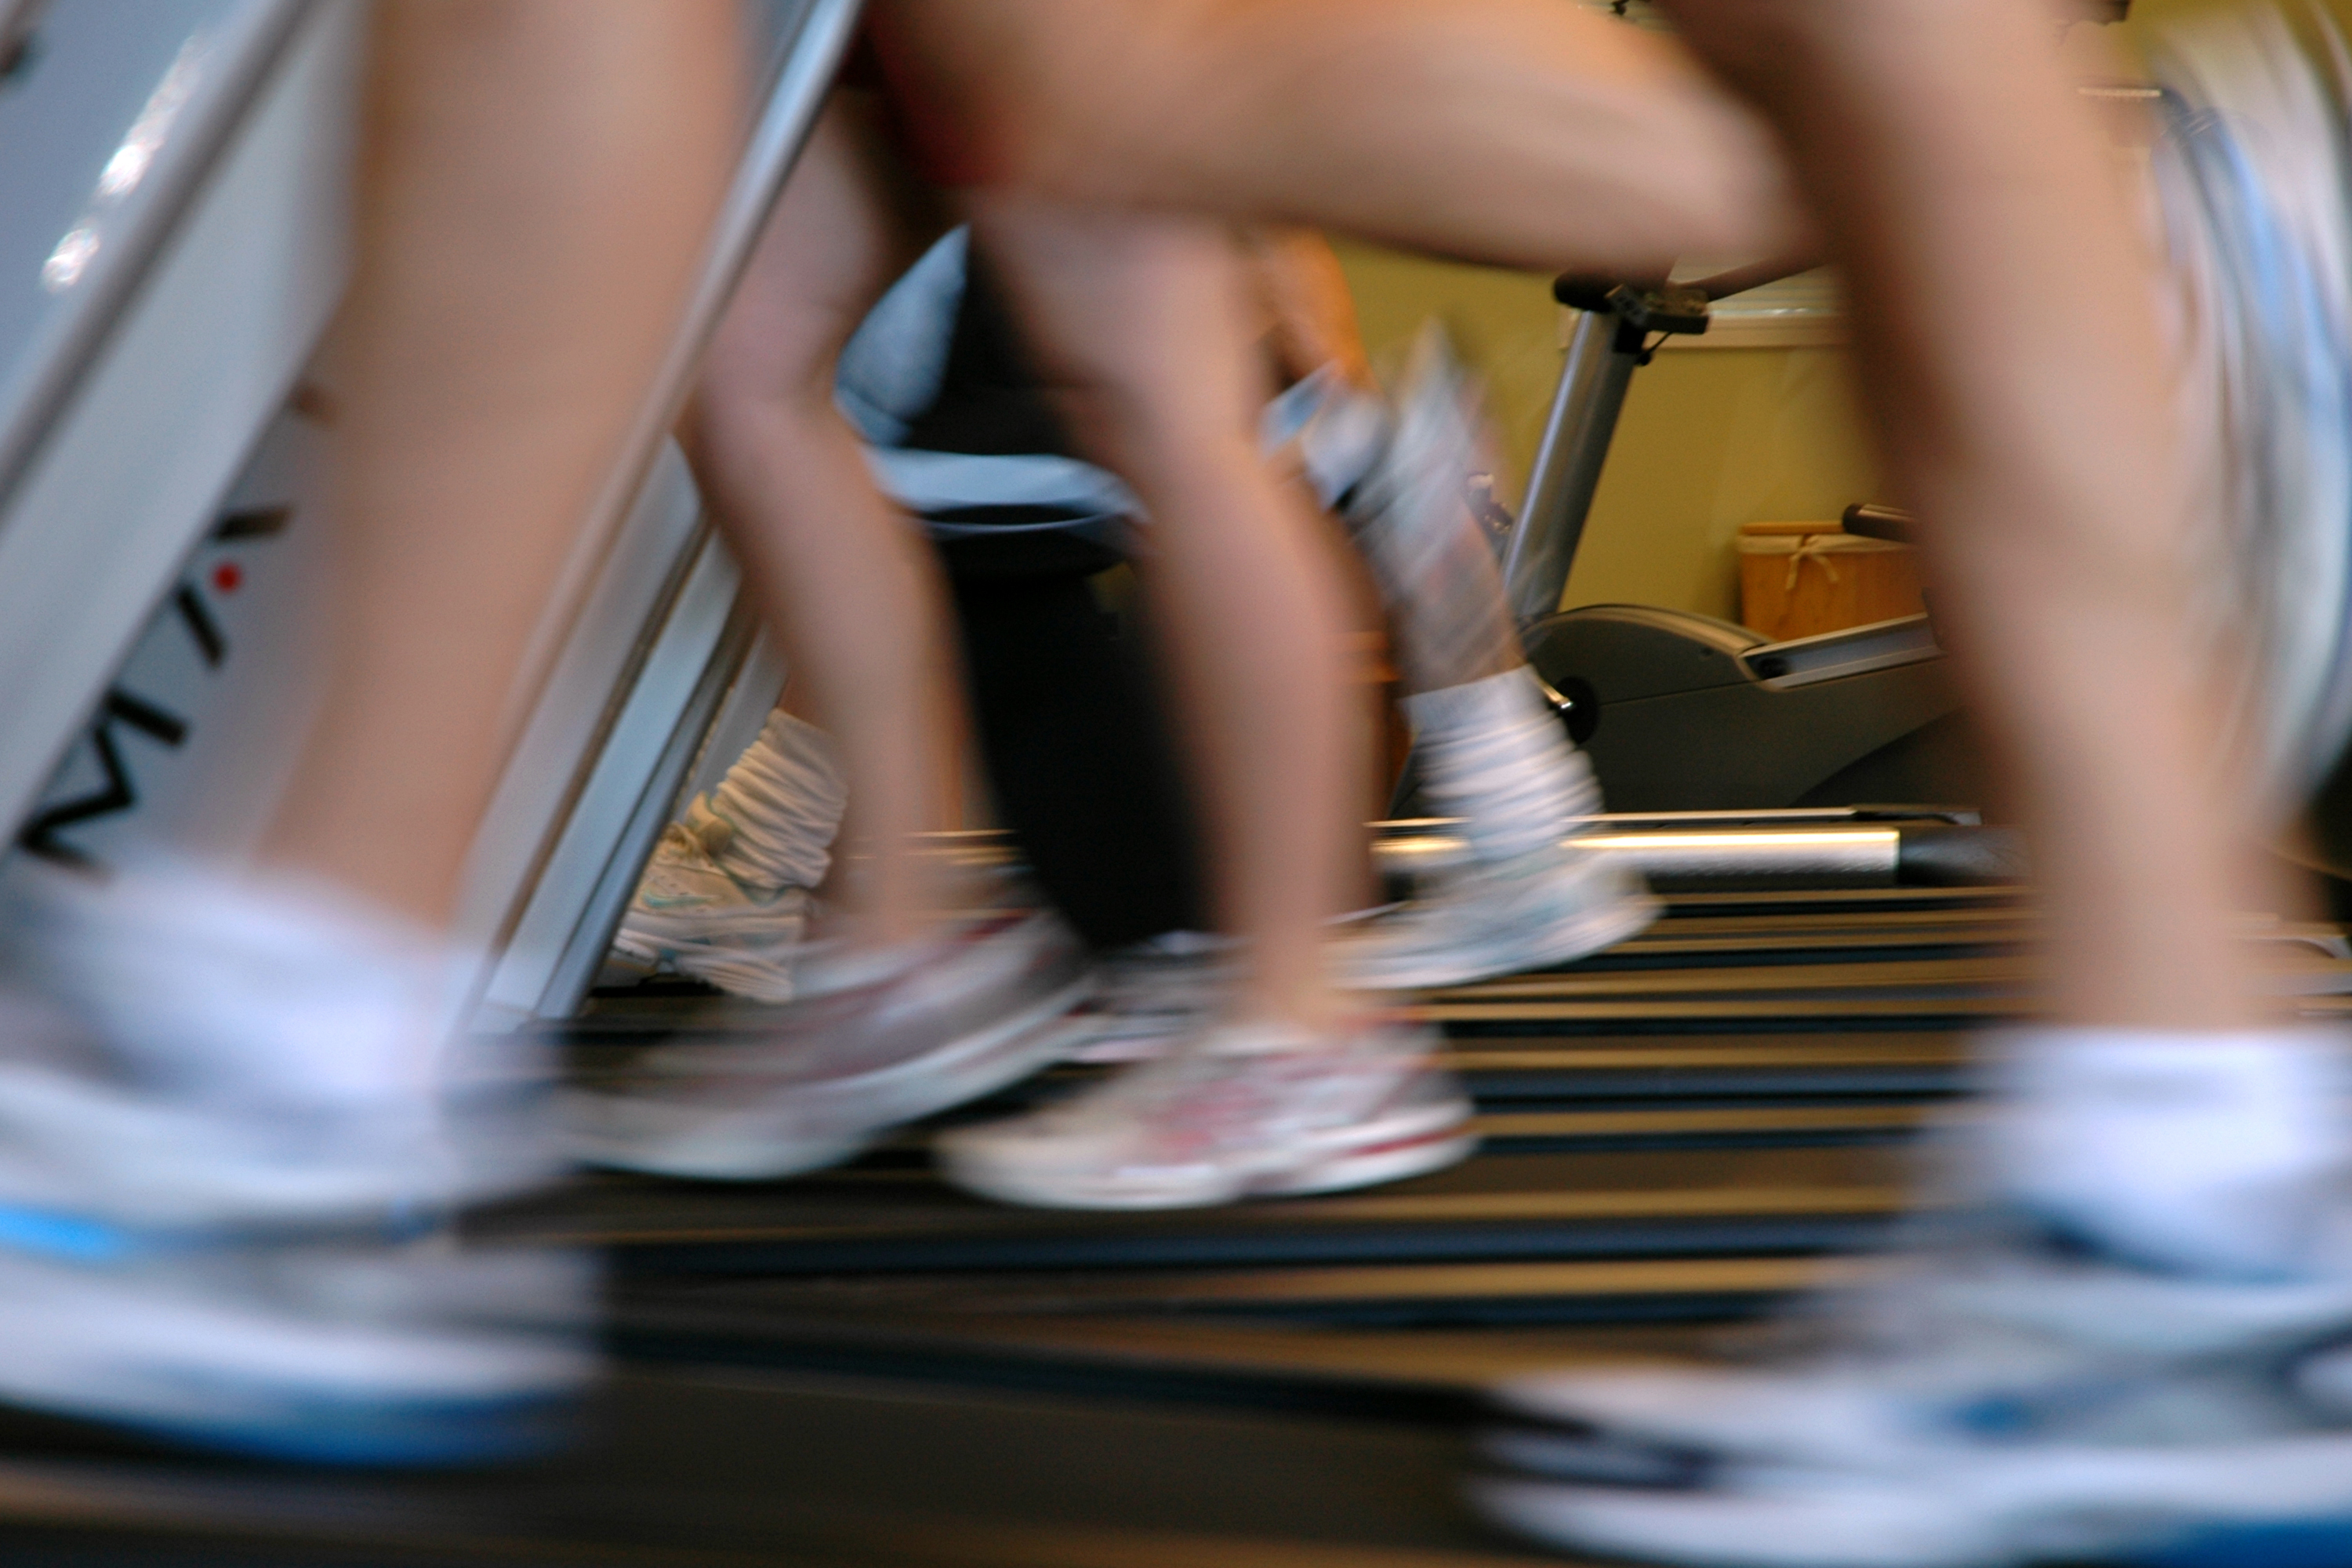 Running-on-treadmills-motion-blur.jpg